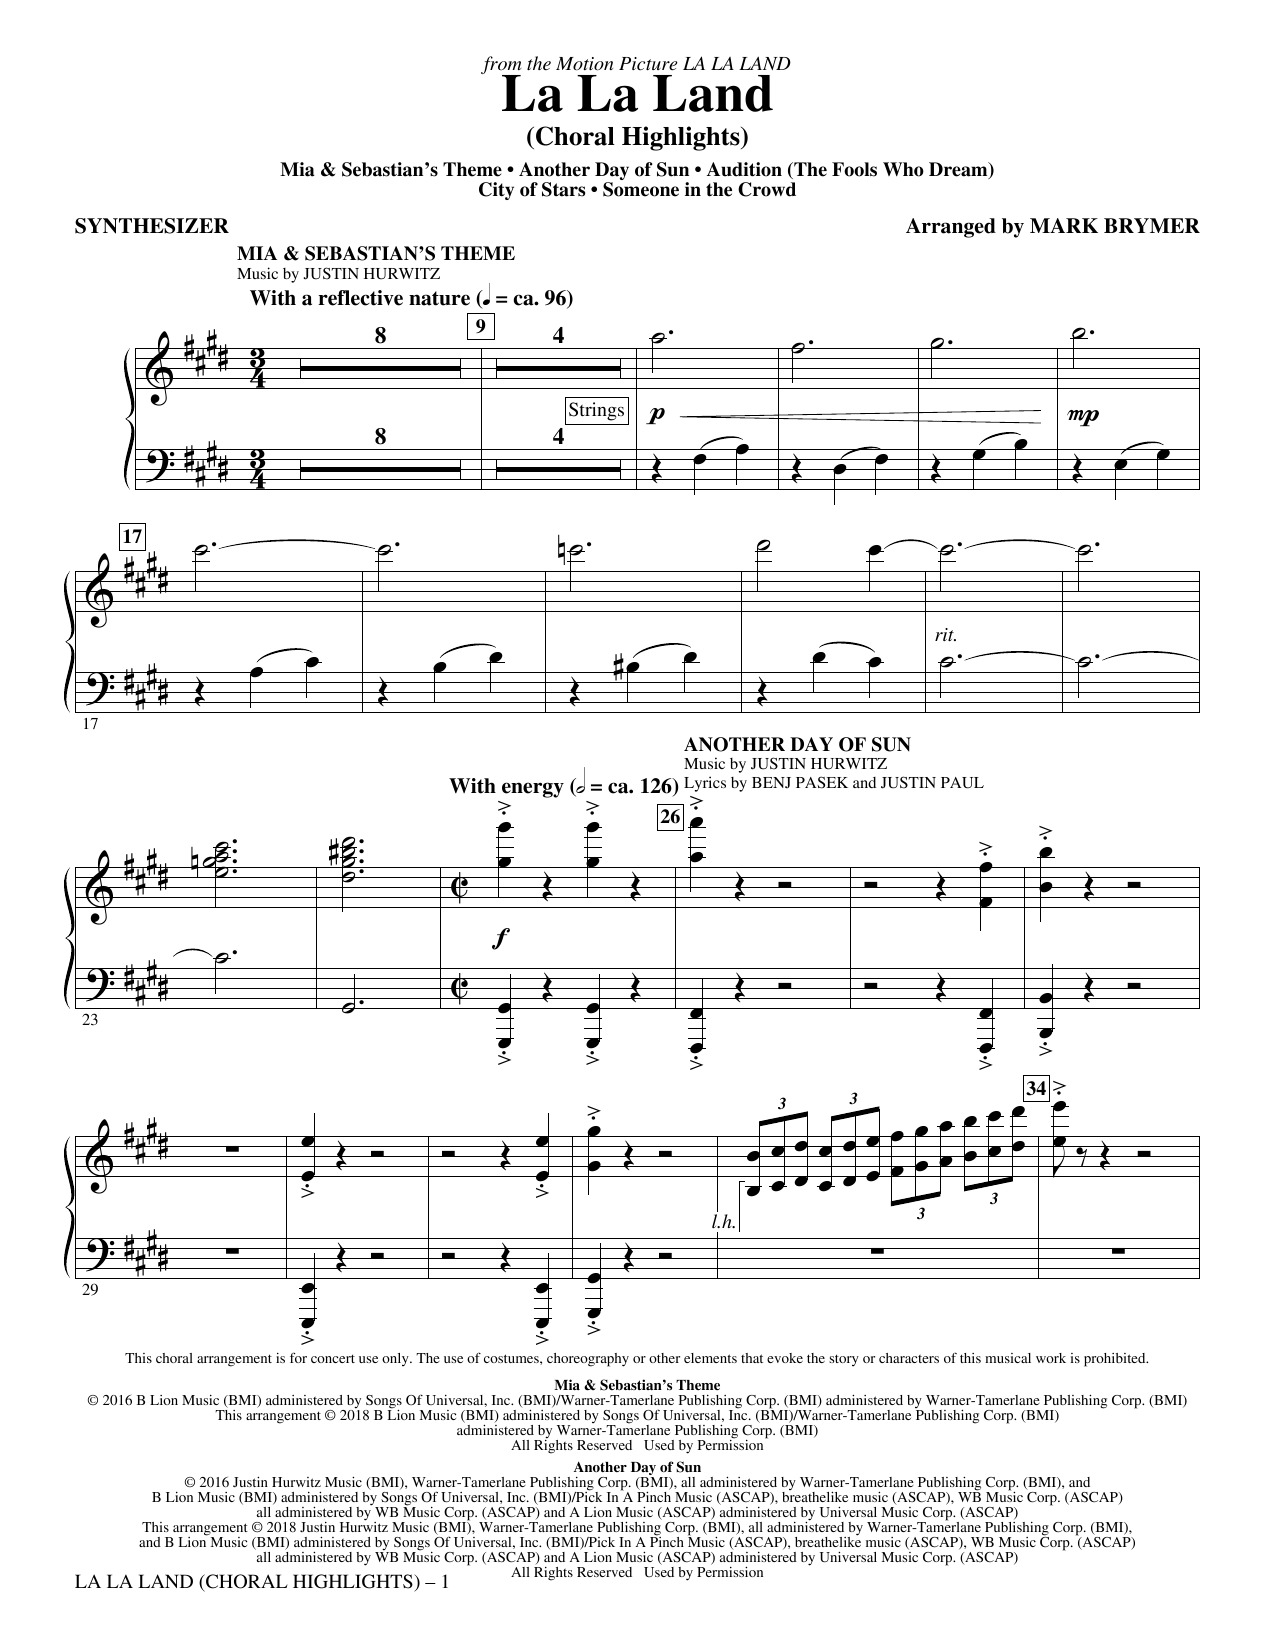 La La Land: Choral Highlights (arr. Mark Brymer) - Synthesizer Sheet Music